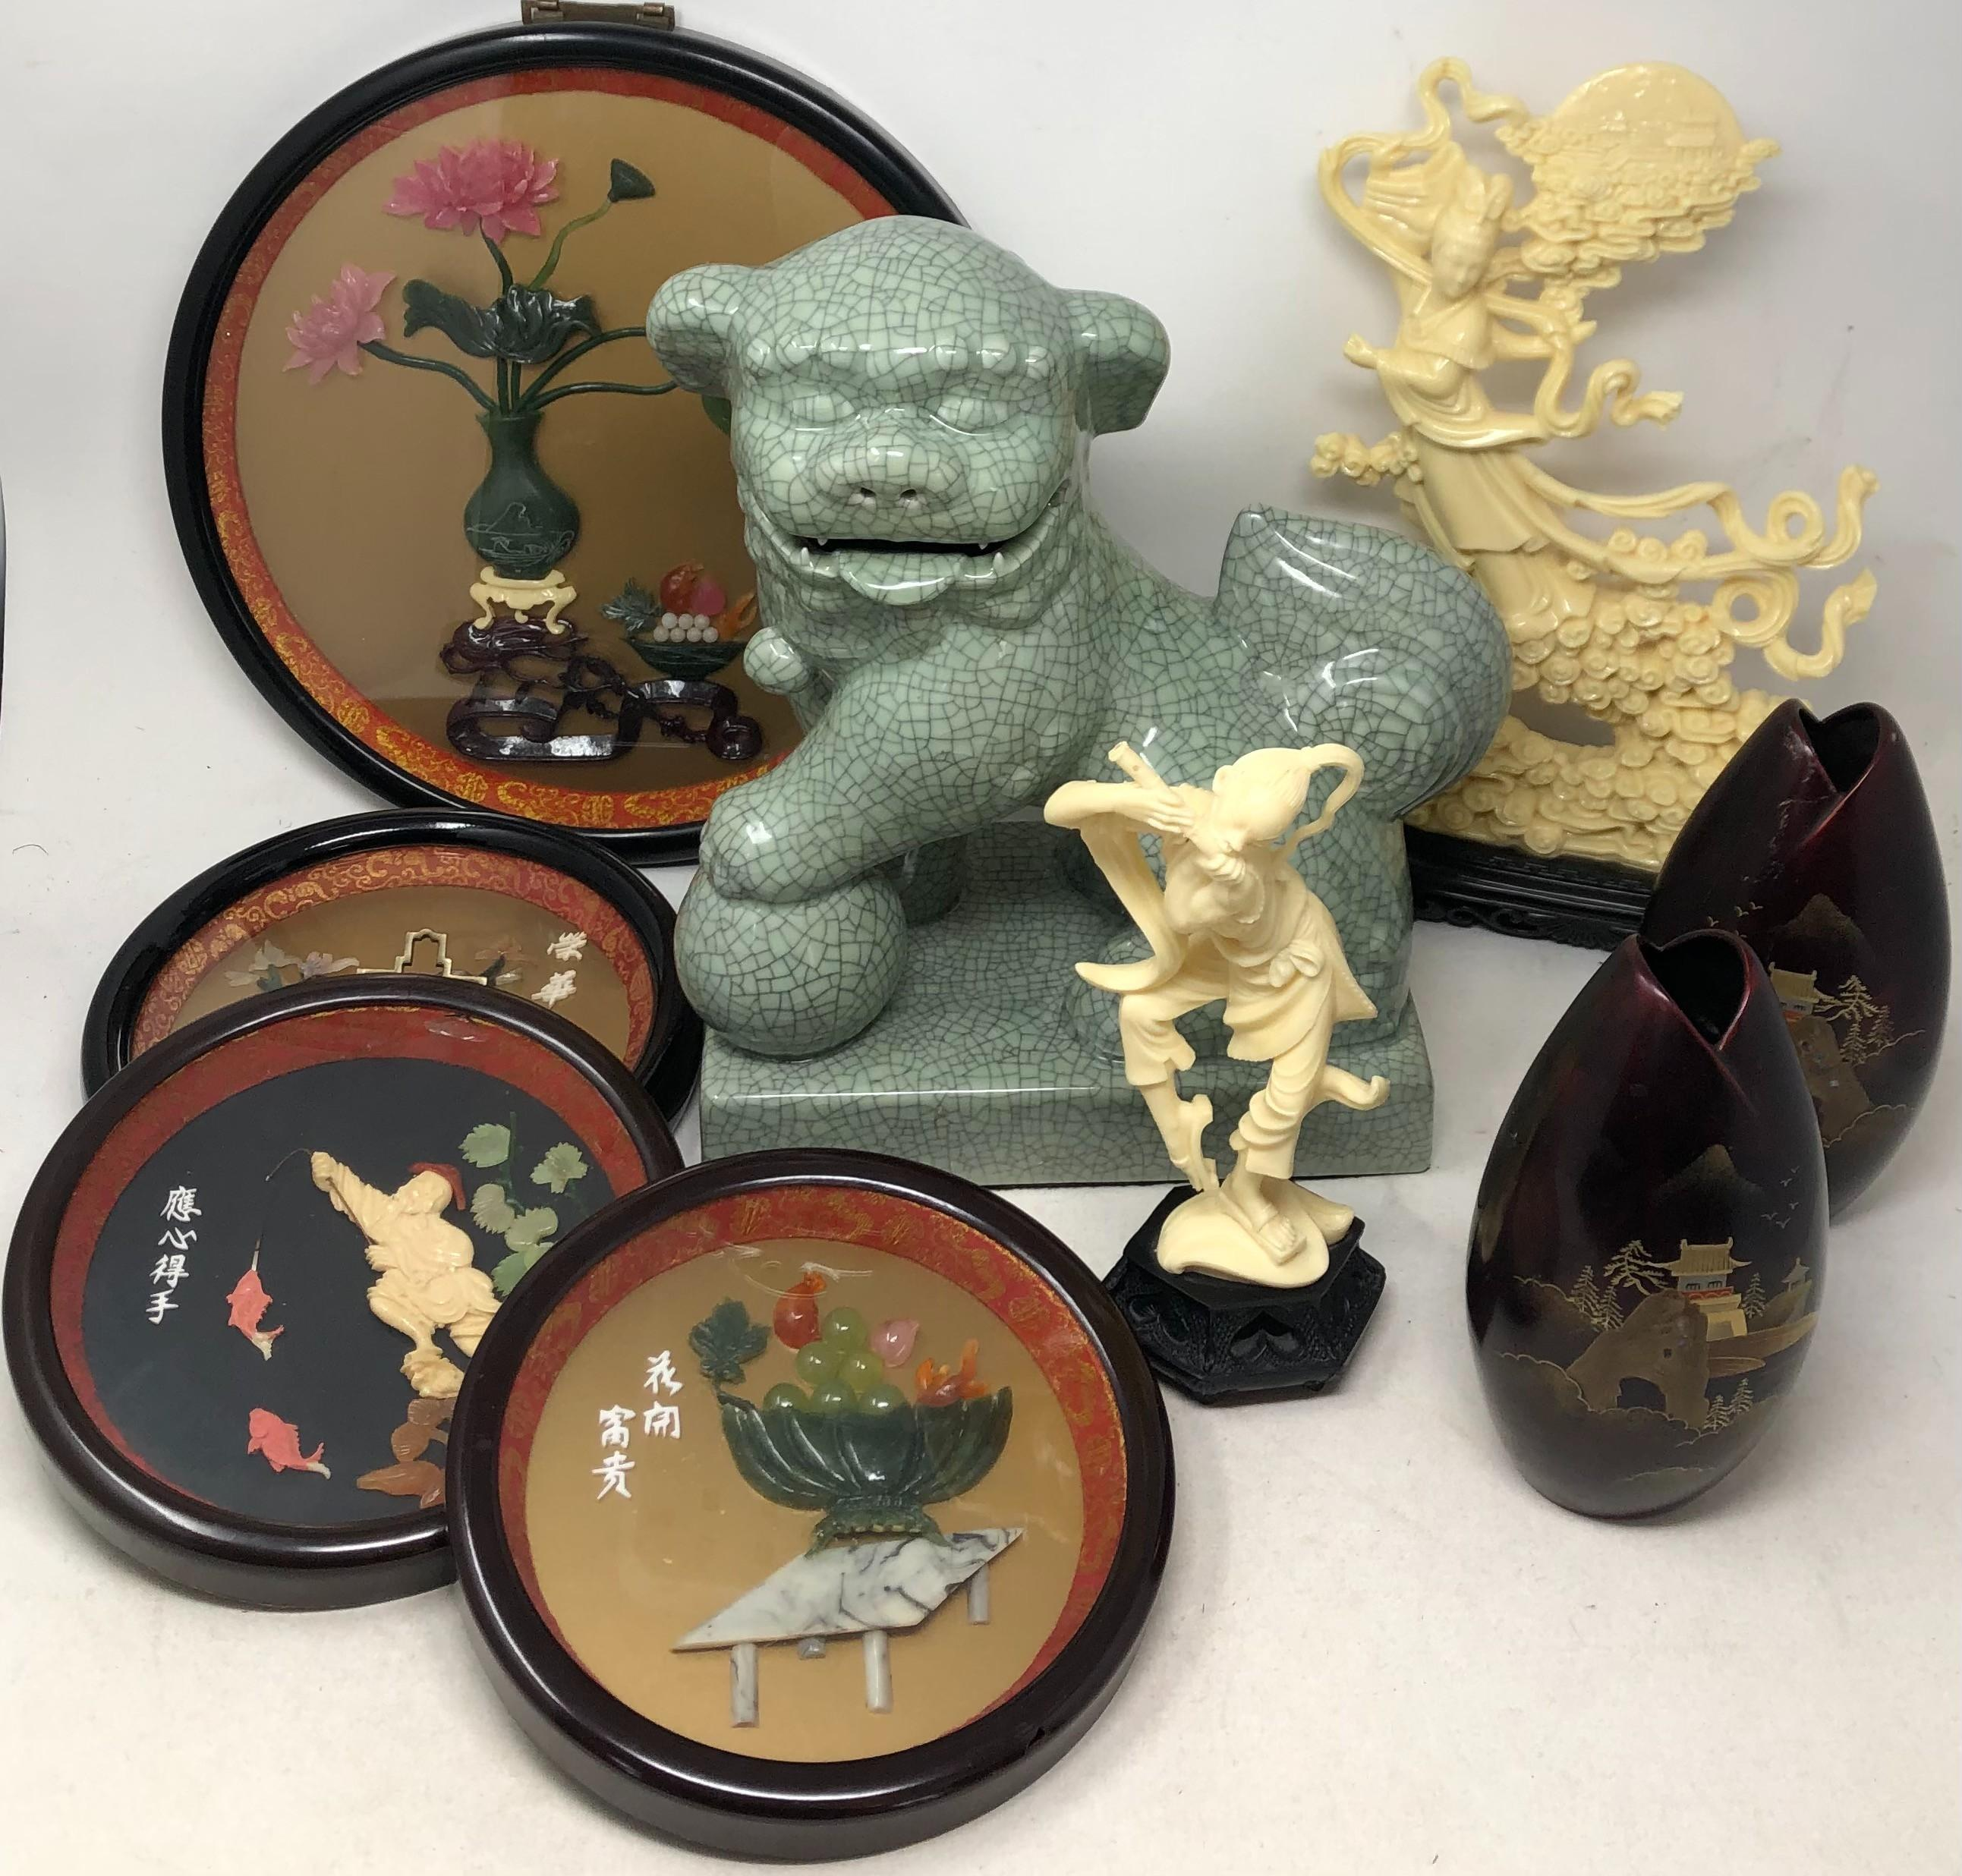 Collection of decorative Asian items including a pair of vases, four framed shadowbox pieces, a foo dog with a crackled glazed style finish, and two composition statues.